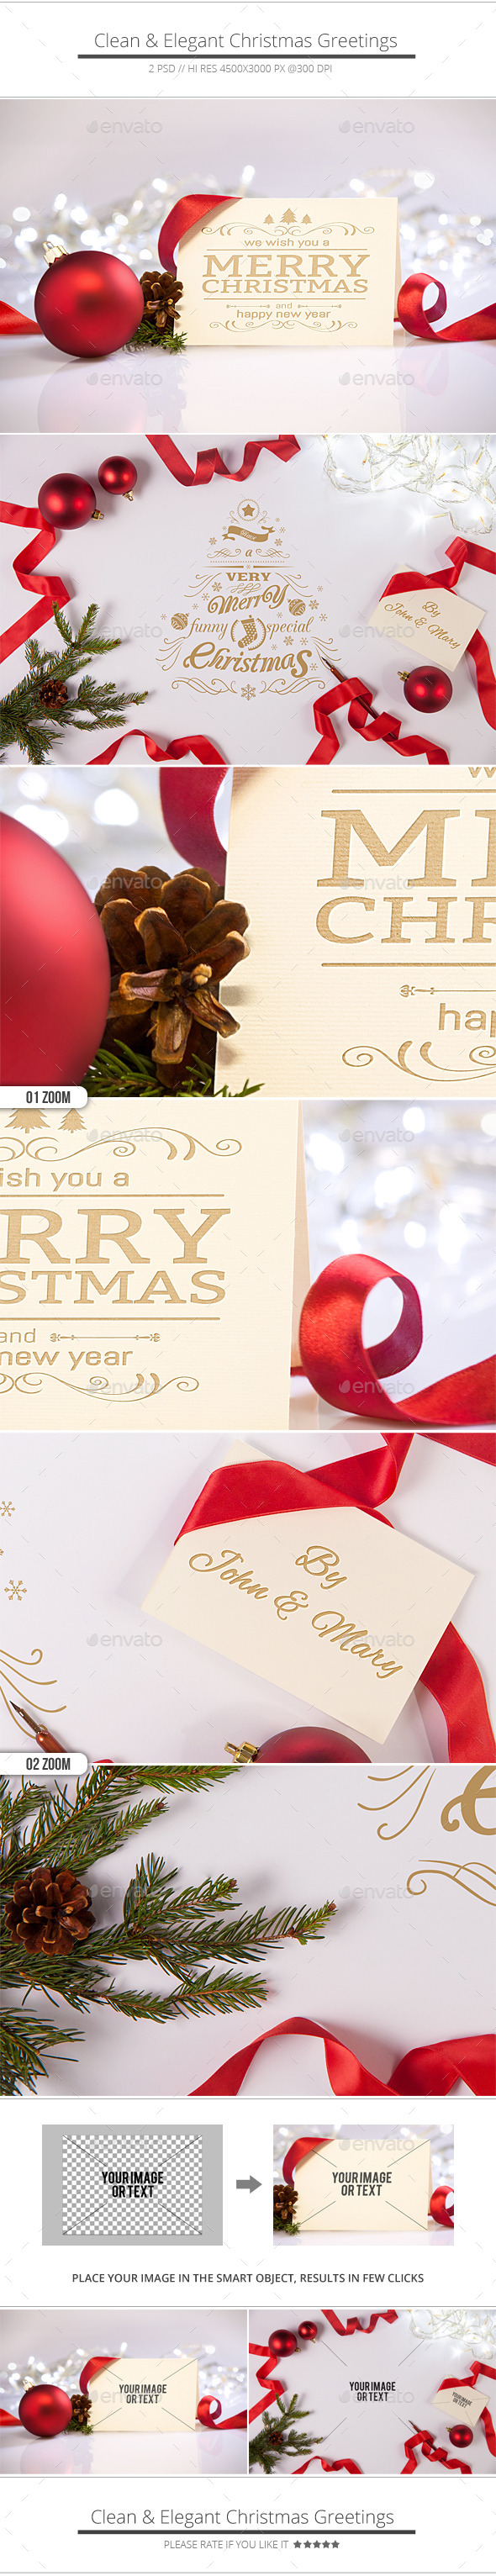 GraphicRiver Clean and Elegant Christmas Greetings Mockups 9536993